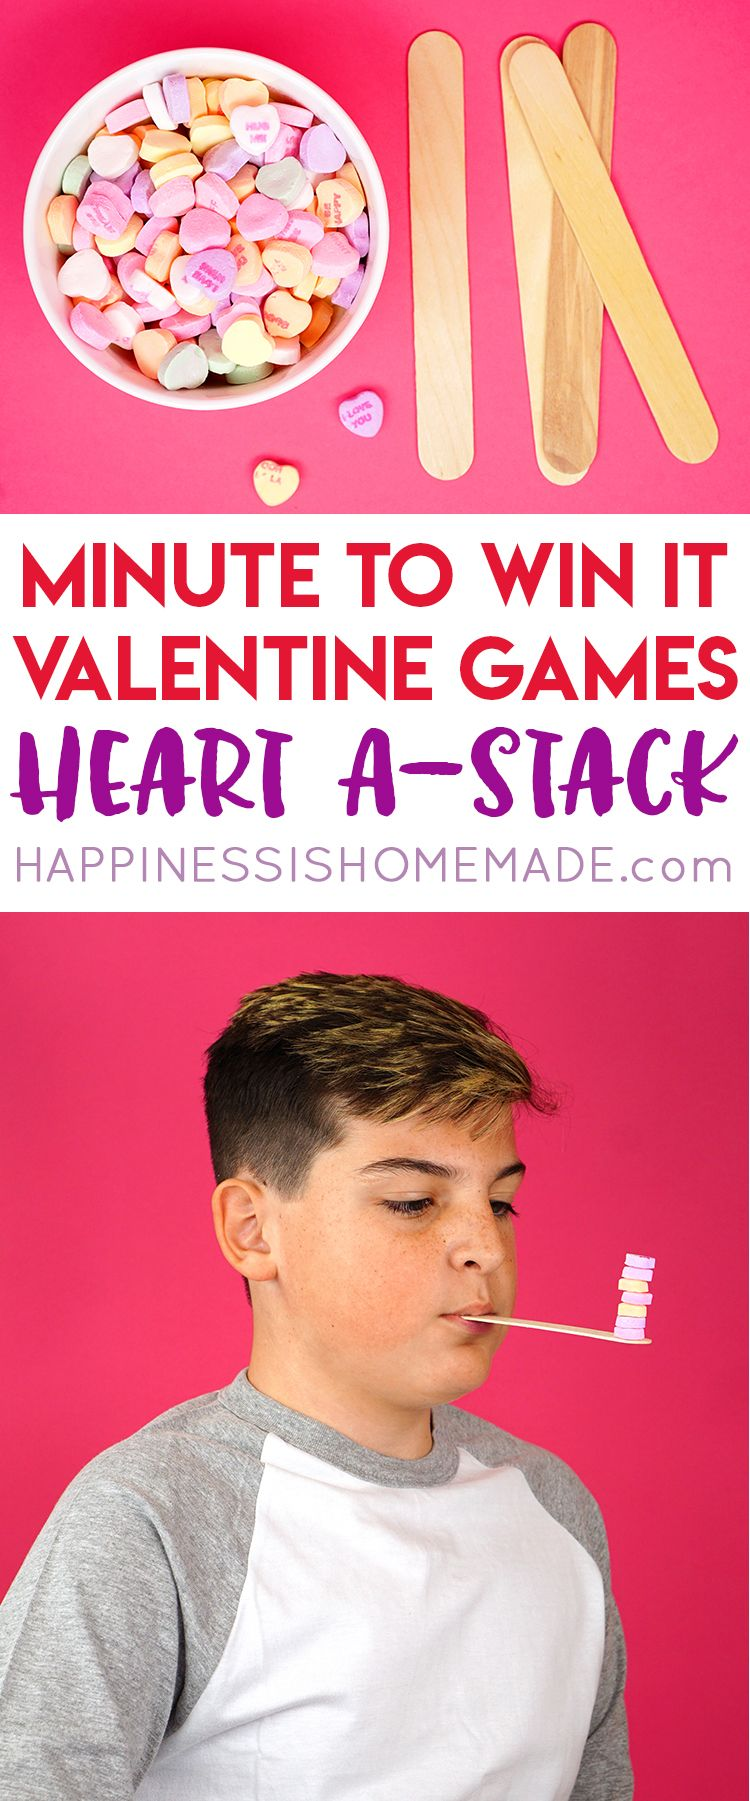 valentine minute to win it games happiness is homemade - Valentine Minute To Win It Games